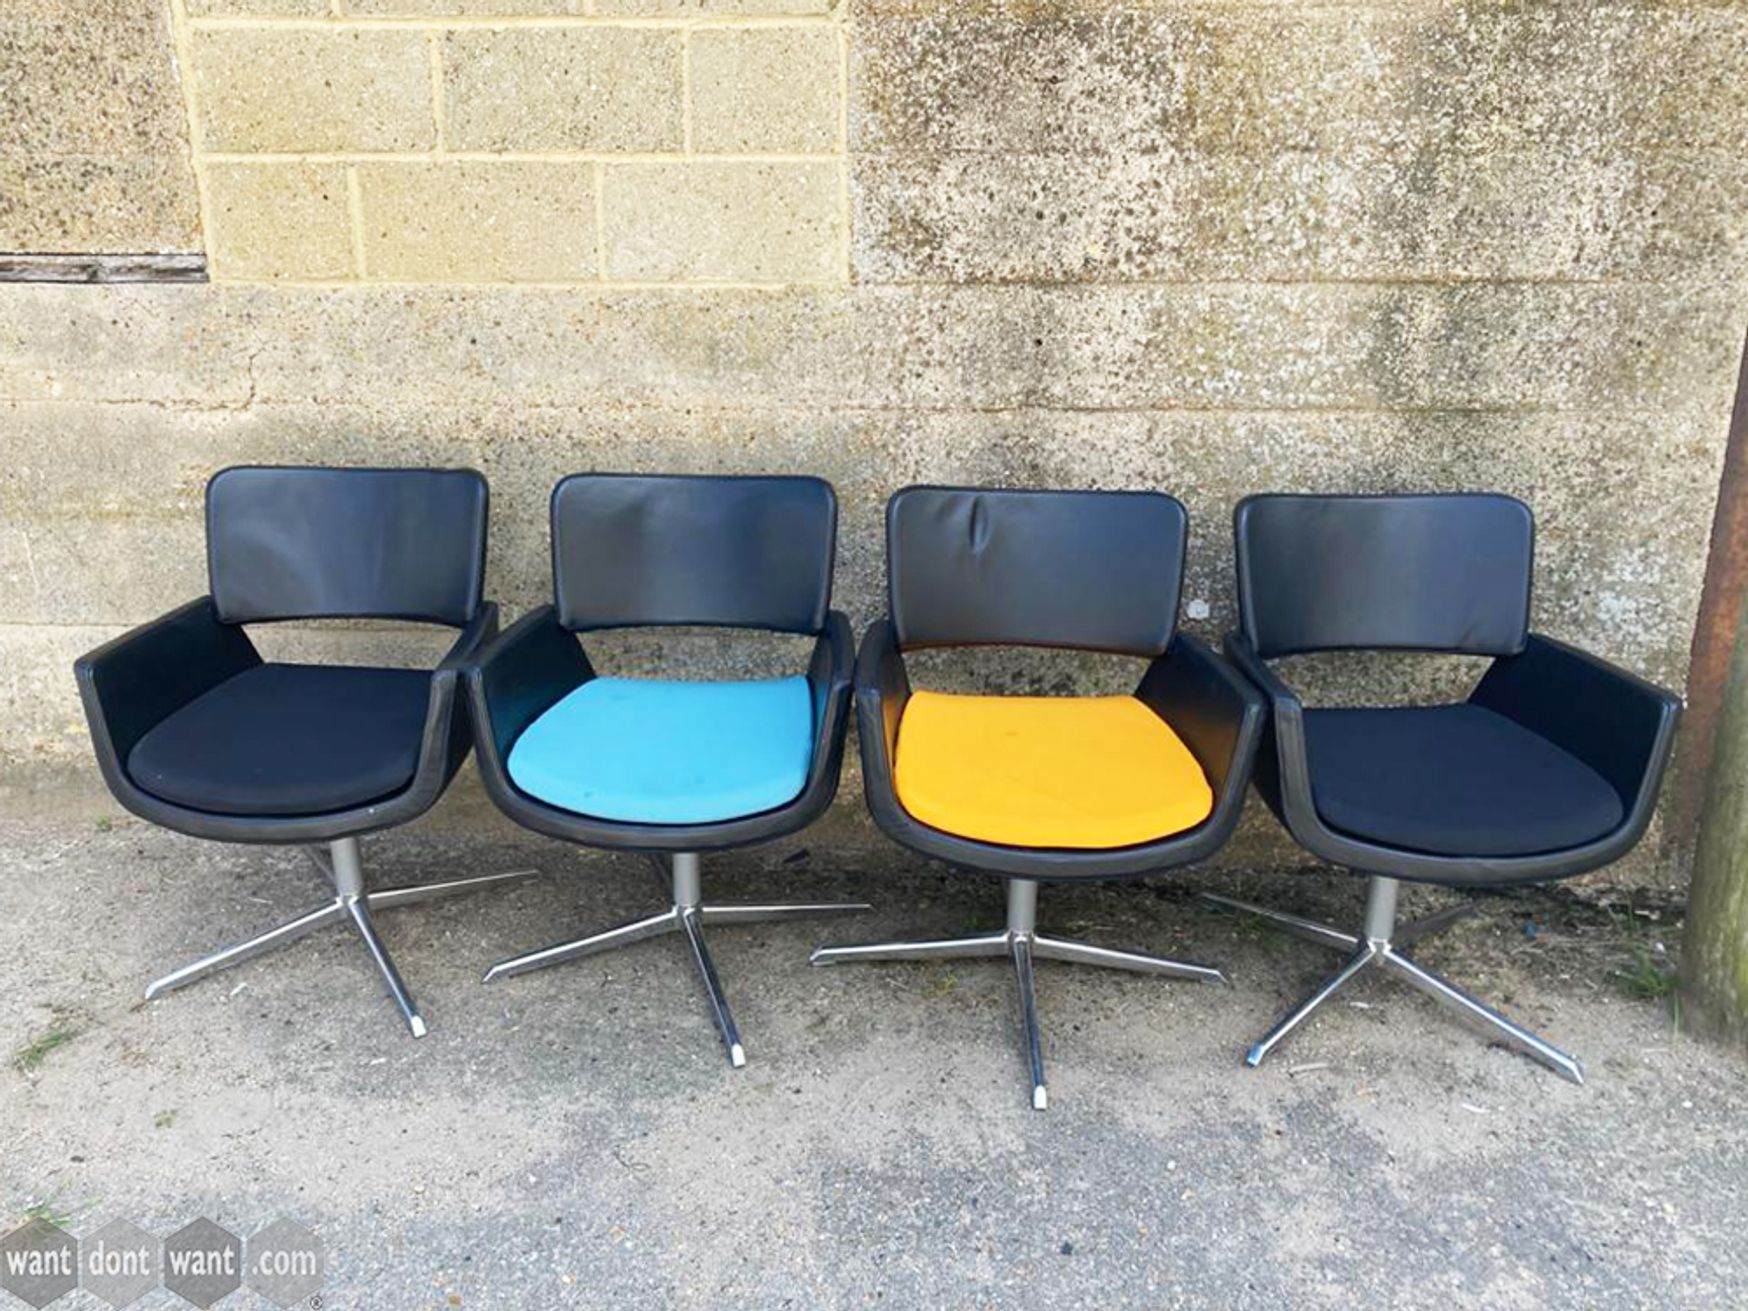 Used Connection Seating Korus Chairs with Leather-look Seat Pads